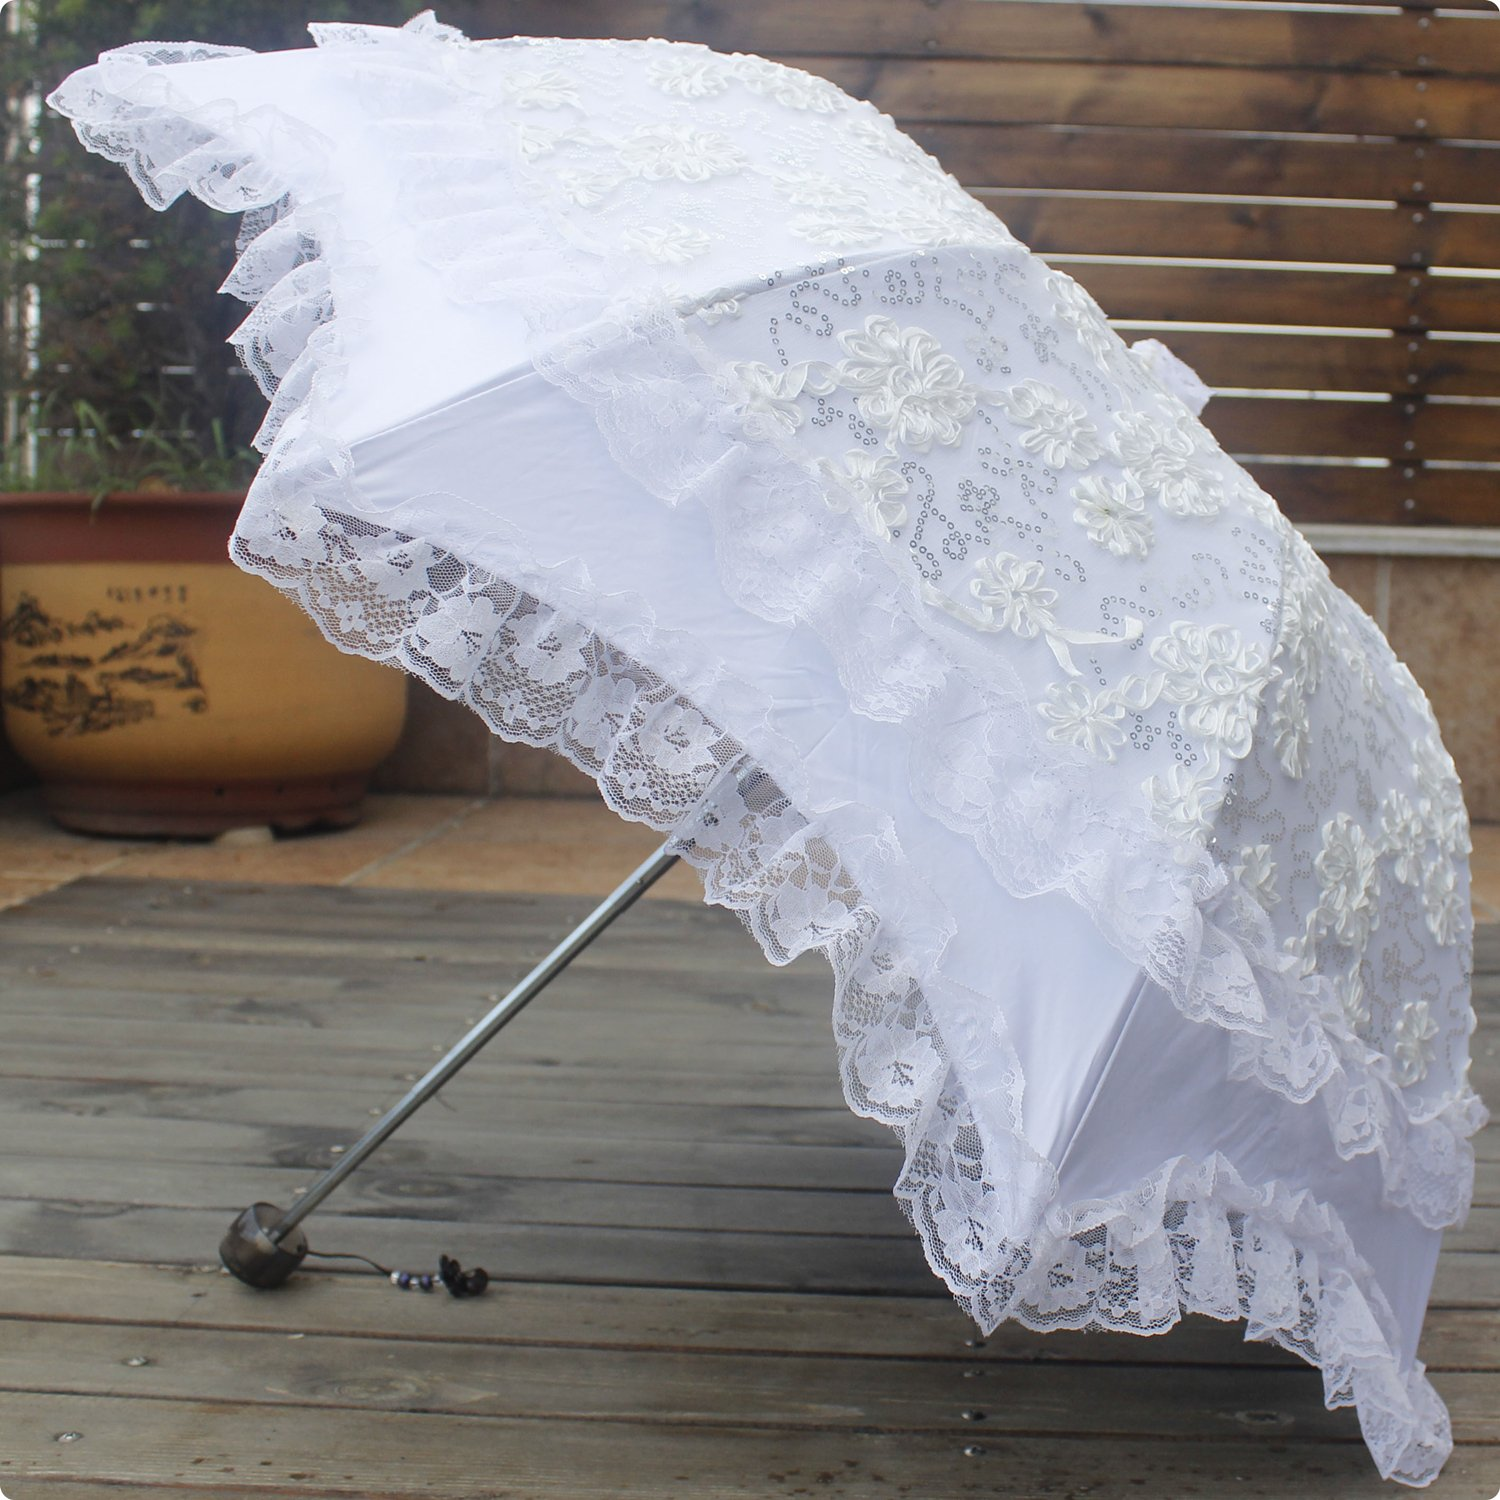 Make a Victorian Carriage Parasol Honeystore Mushroom Umbrellas Three Folding Vintage Lace Parasol Bride Umbrella $34.69 AT vintagedancer.com